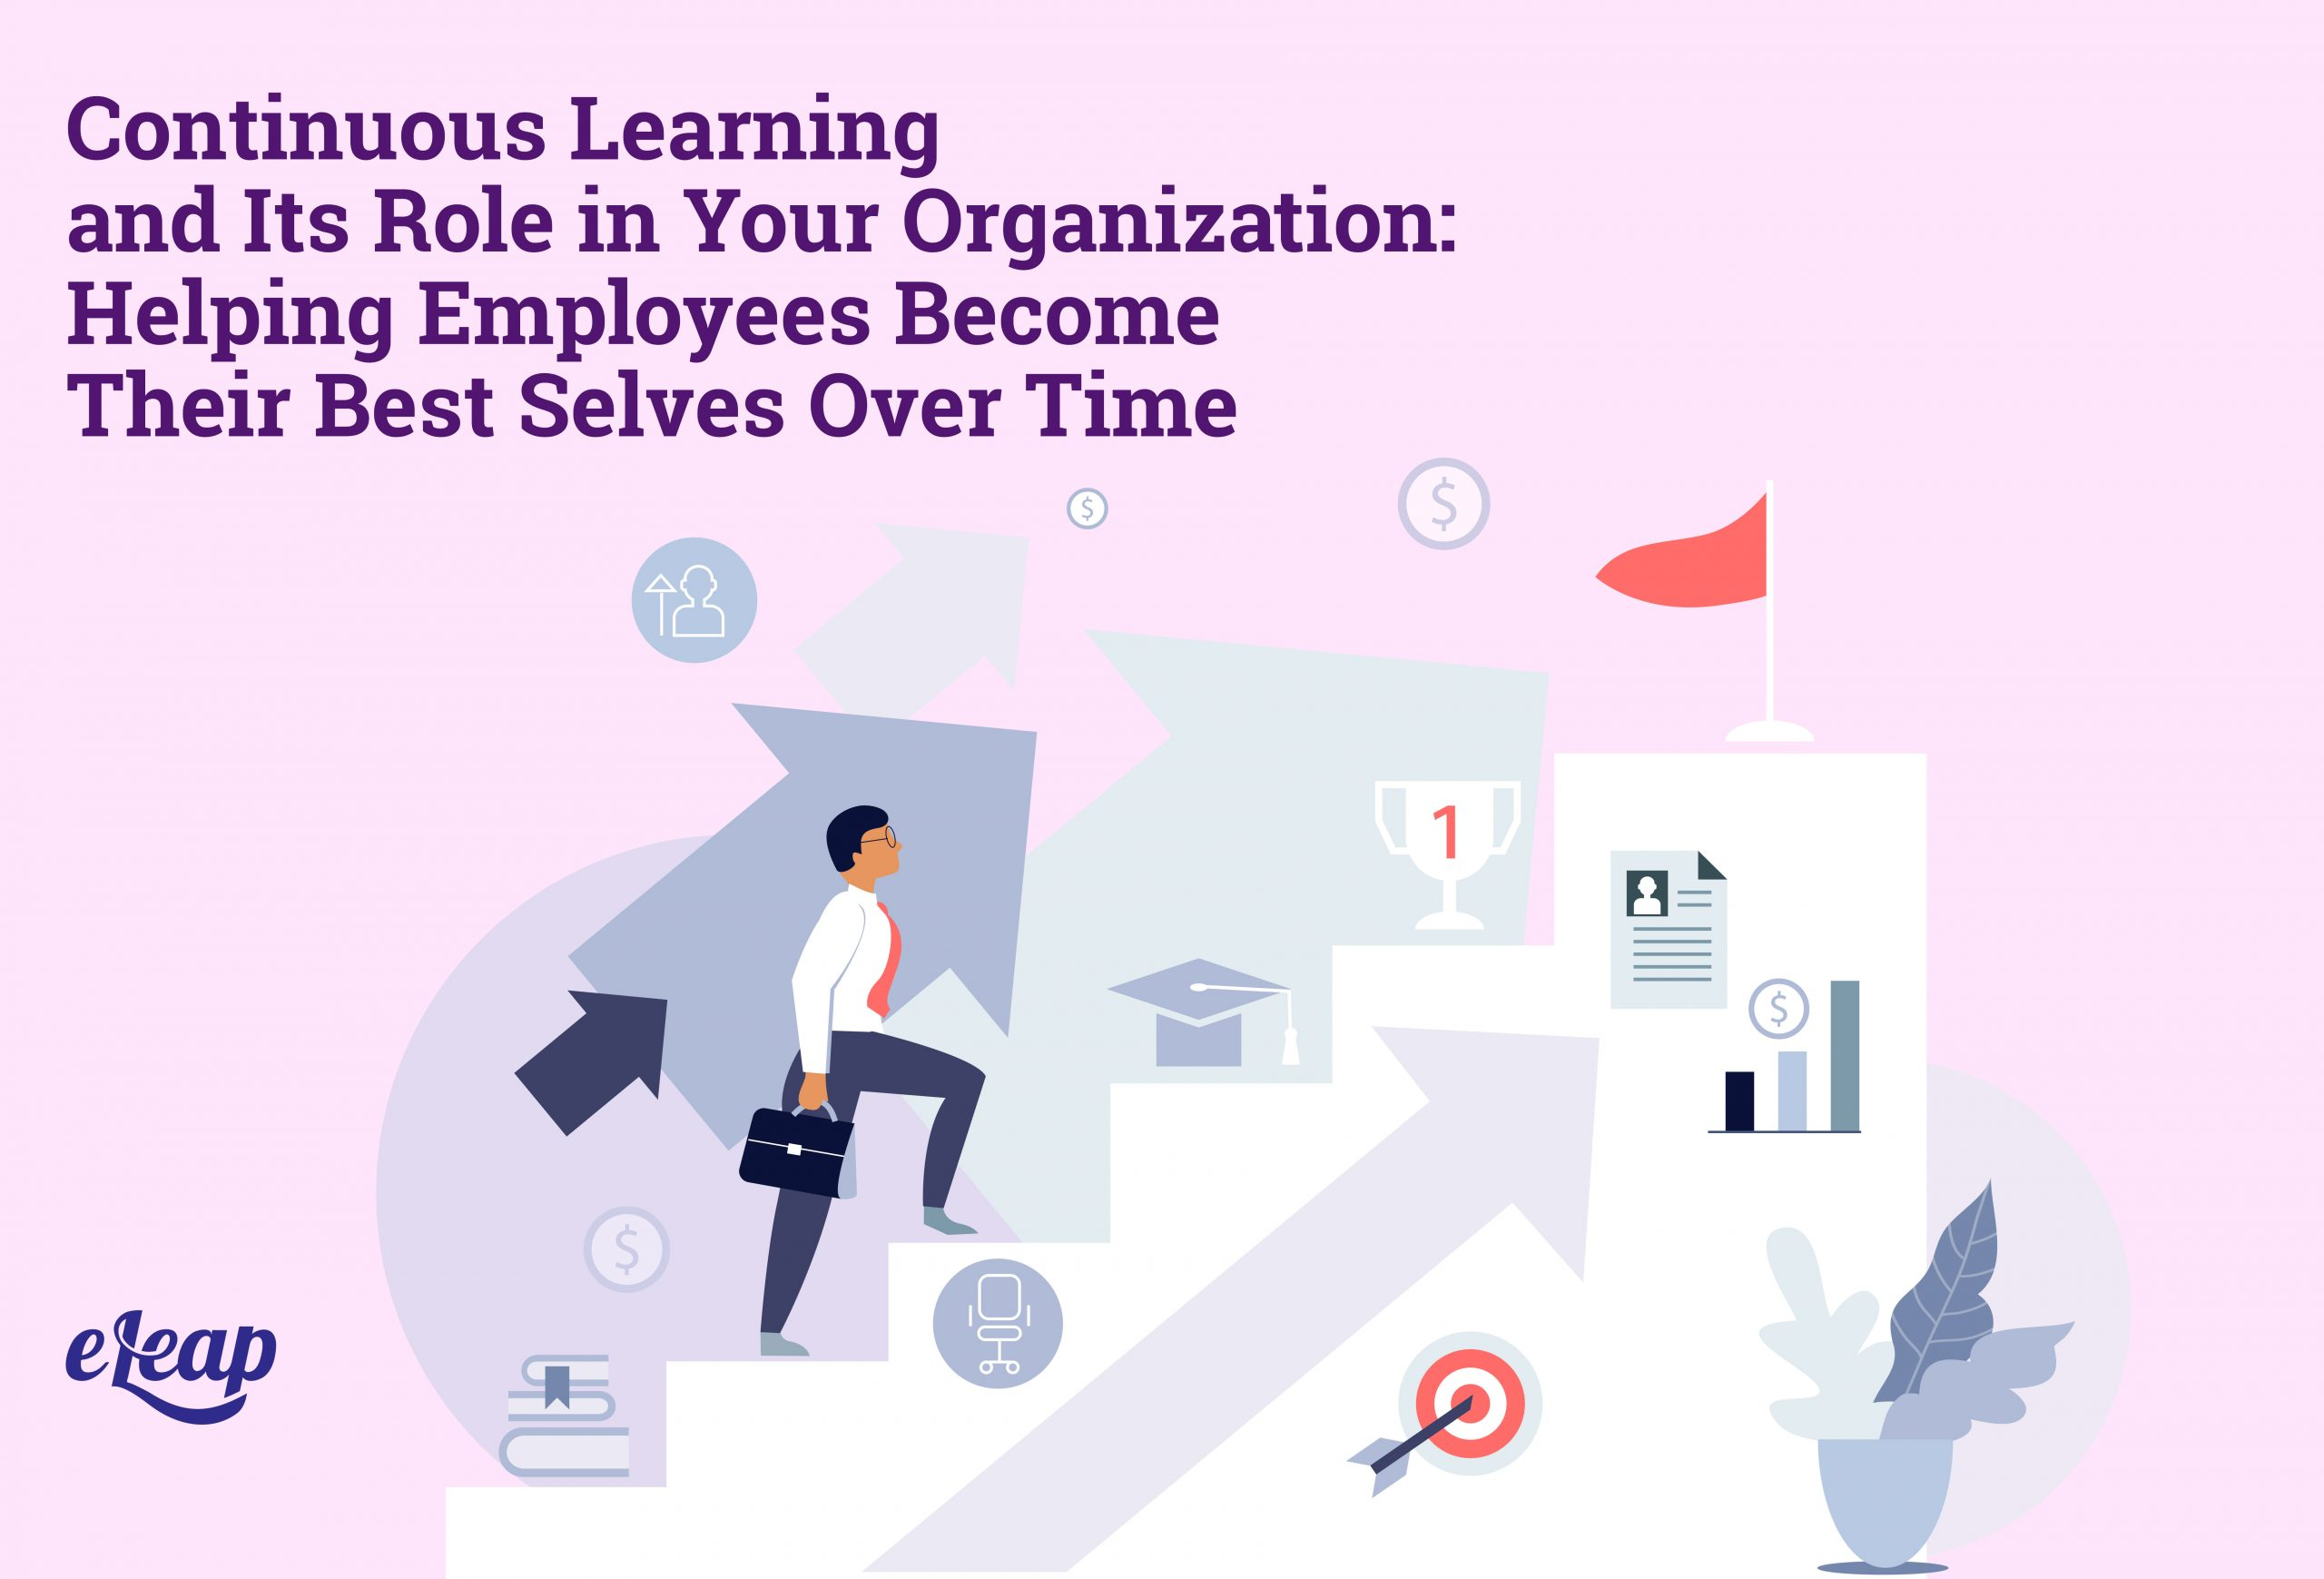 Continuous Learning and Its Role in Your Organization: Helping Employees Become Their Best Selves Over Time